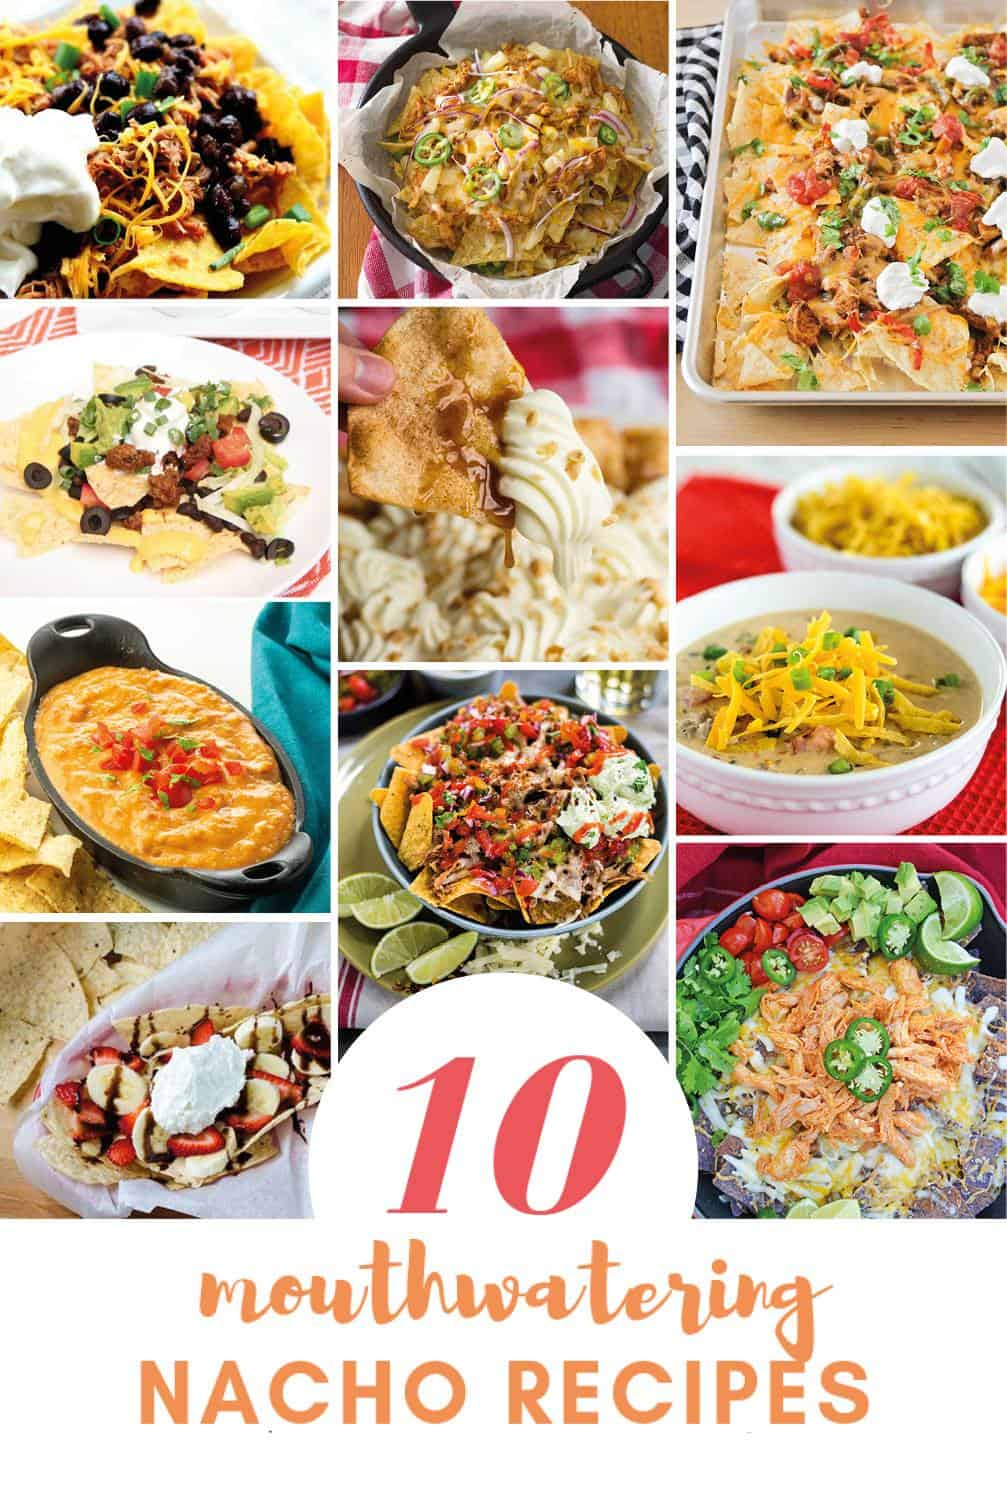 10+ Awesome Nacho Recipes!